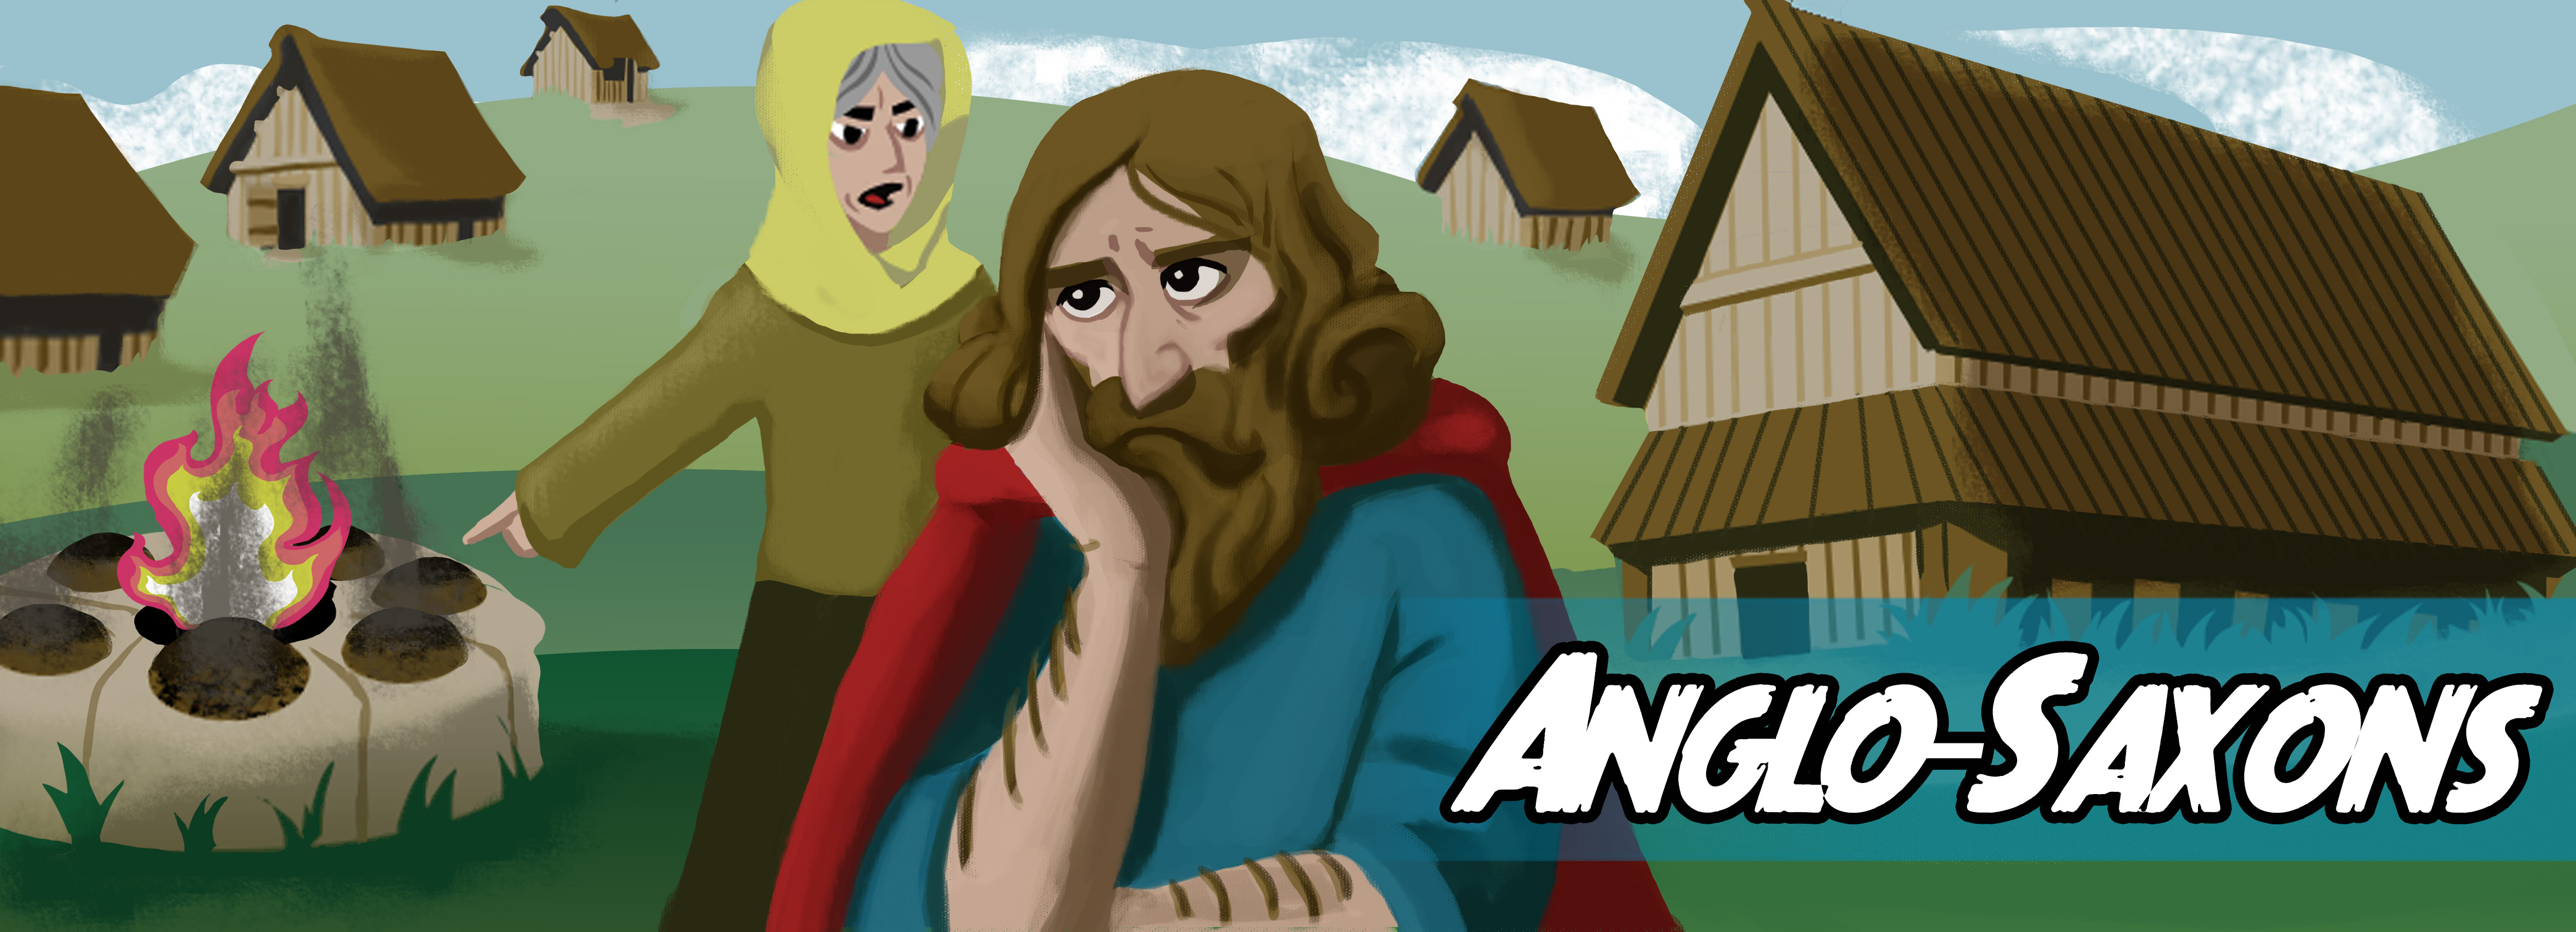 Write your own story about the Anglo Saxons